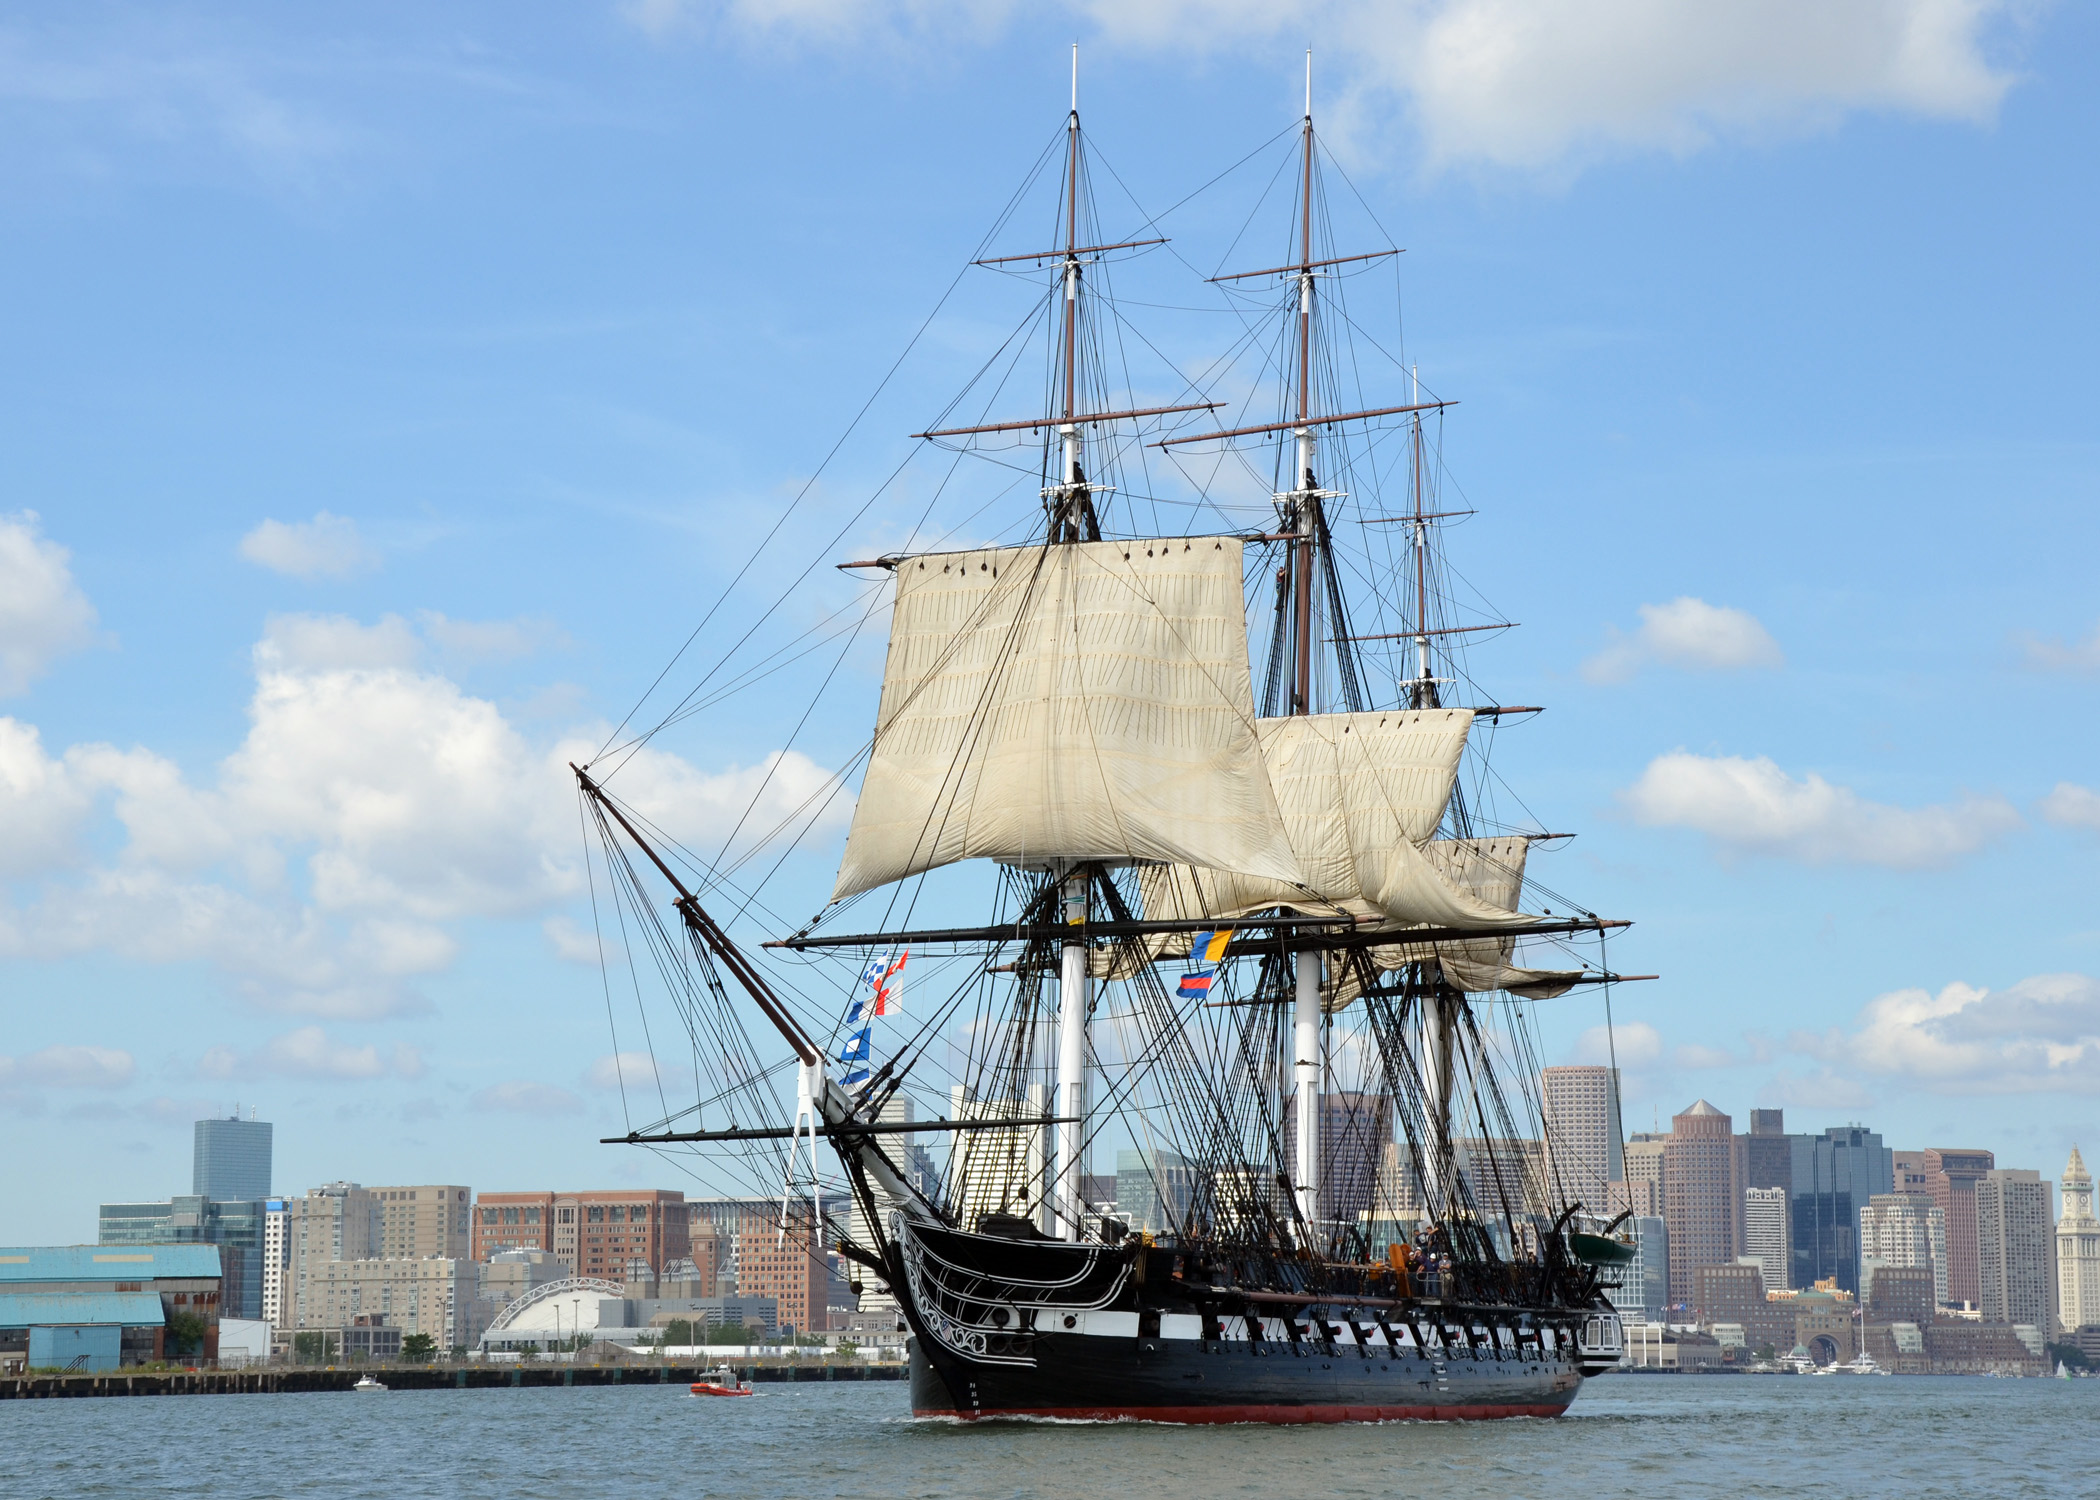 Uss constitution photo